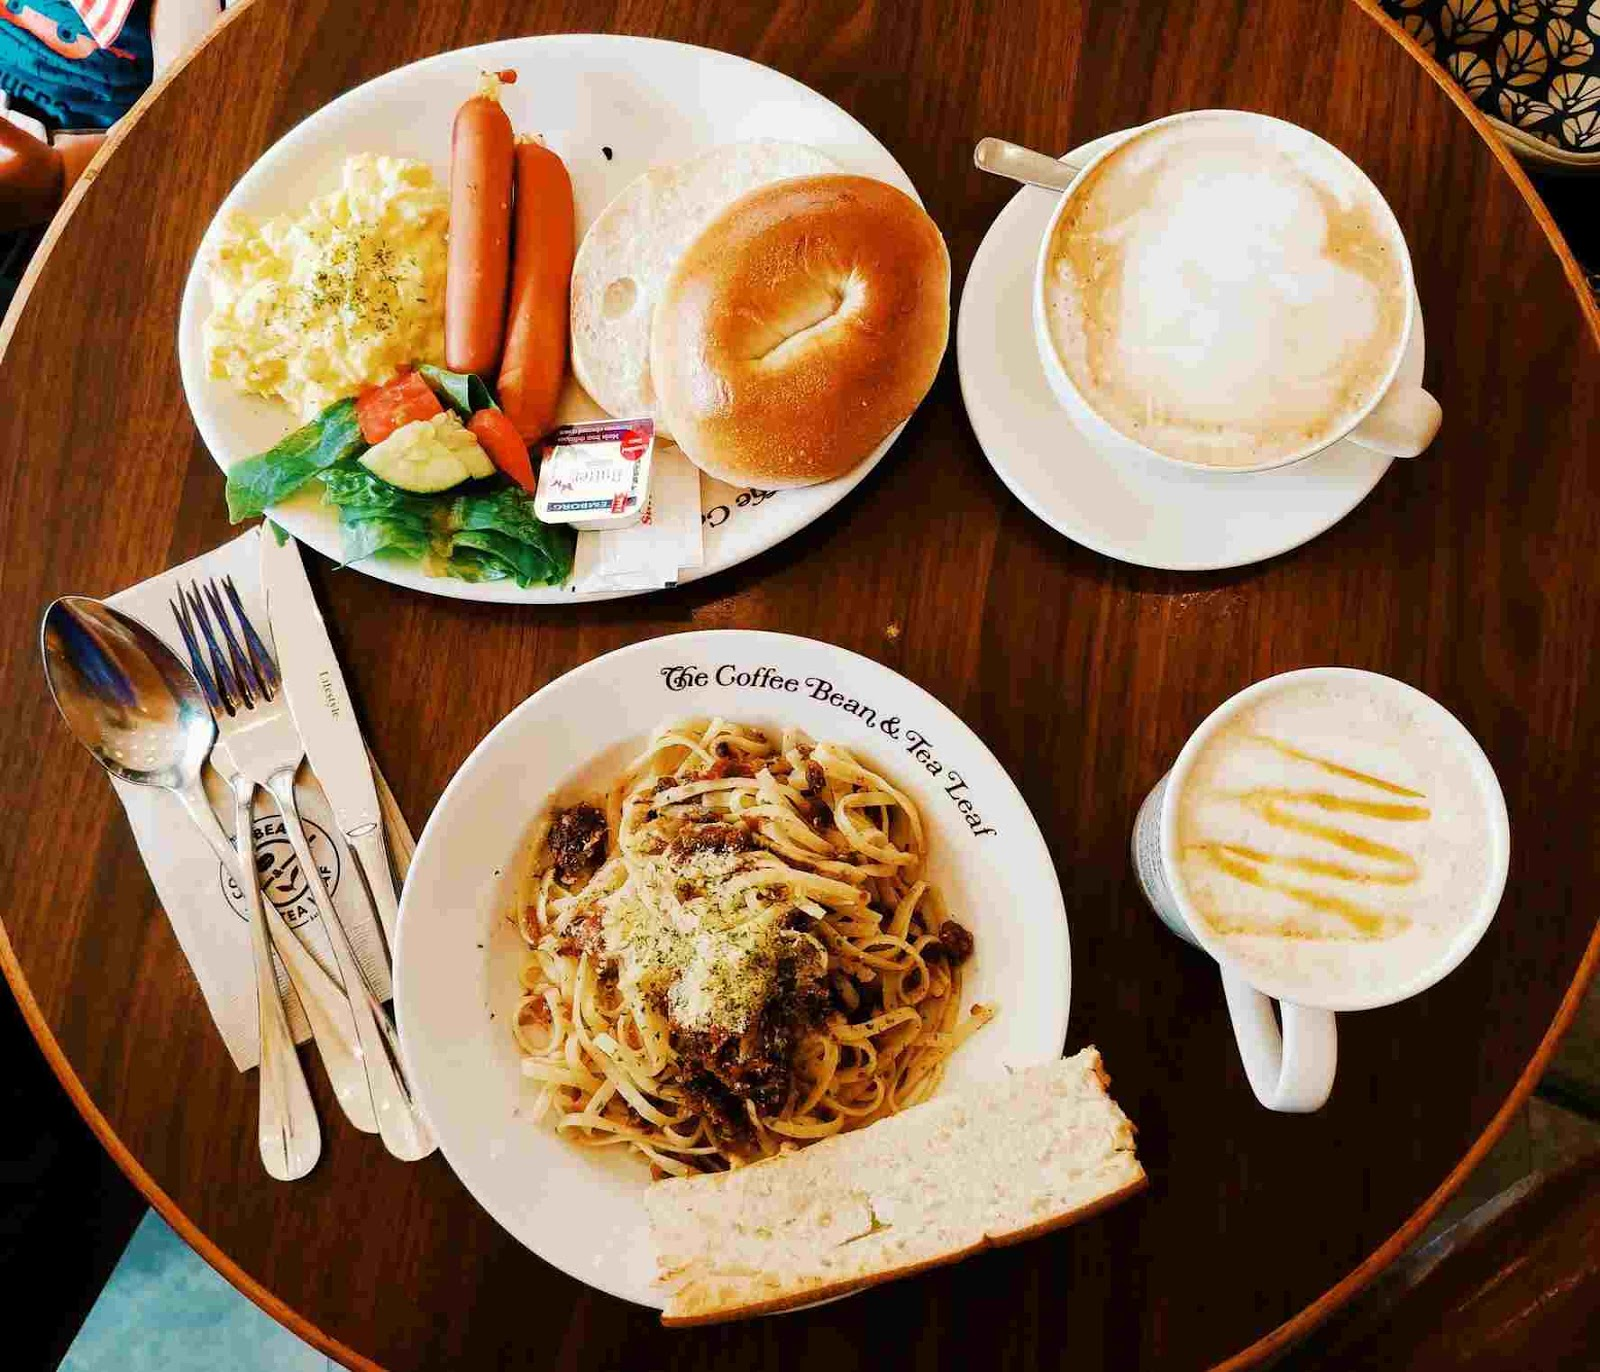 Breakfast spread like Brek O' Day and Sardine and Garlic Linguine at at The Coffee Bean and Tea Leaf